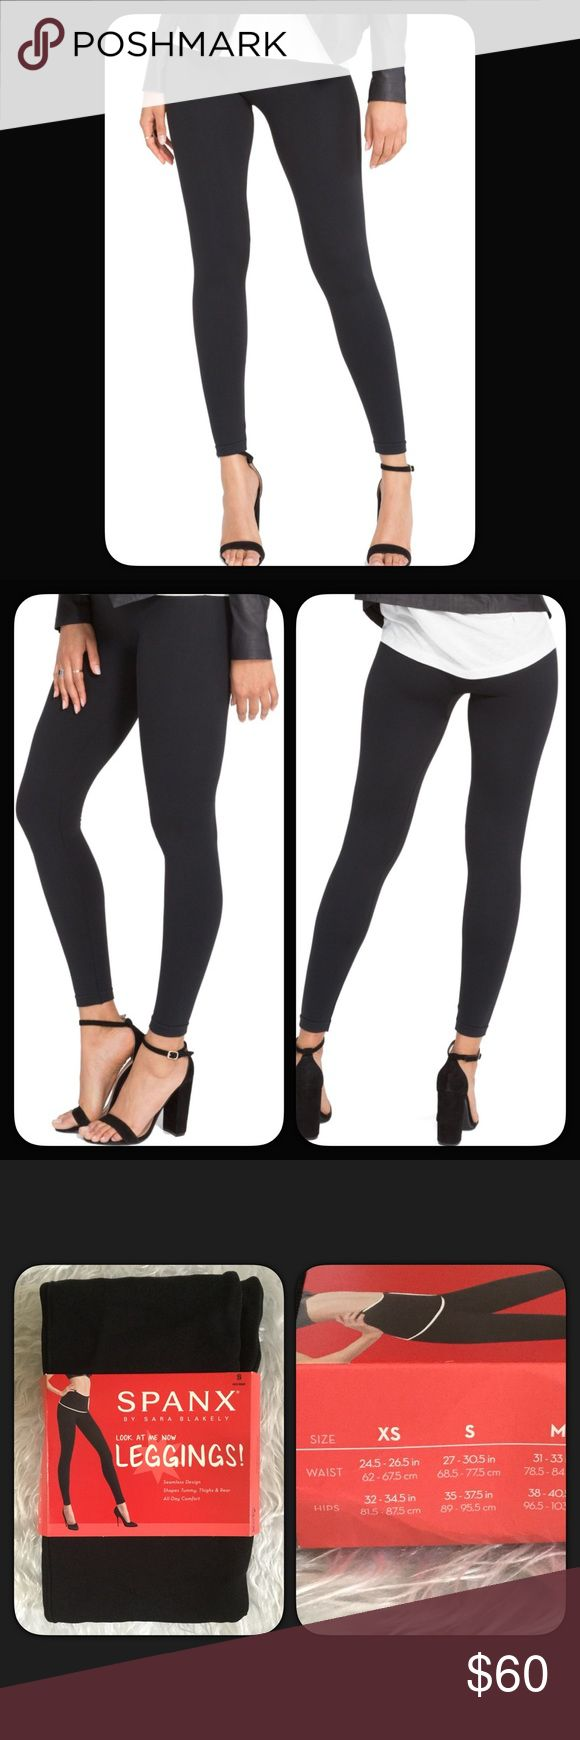 🆕🍒Sale🍒SPANX Look at Me Now Leggings SPANX Look at Me Now Leggings. A stretchy knit and seamless design team for a flattering fit, an essential for leggings, topped with a figure smoothing waistband. Size Small, color: Very Black. NWT. Purchased from Nordstrom's. SPANX Pants Leggings